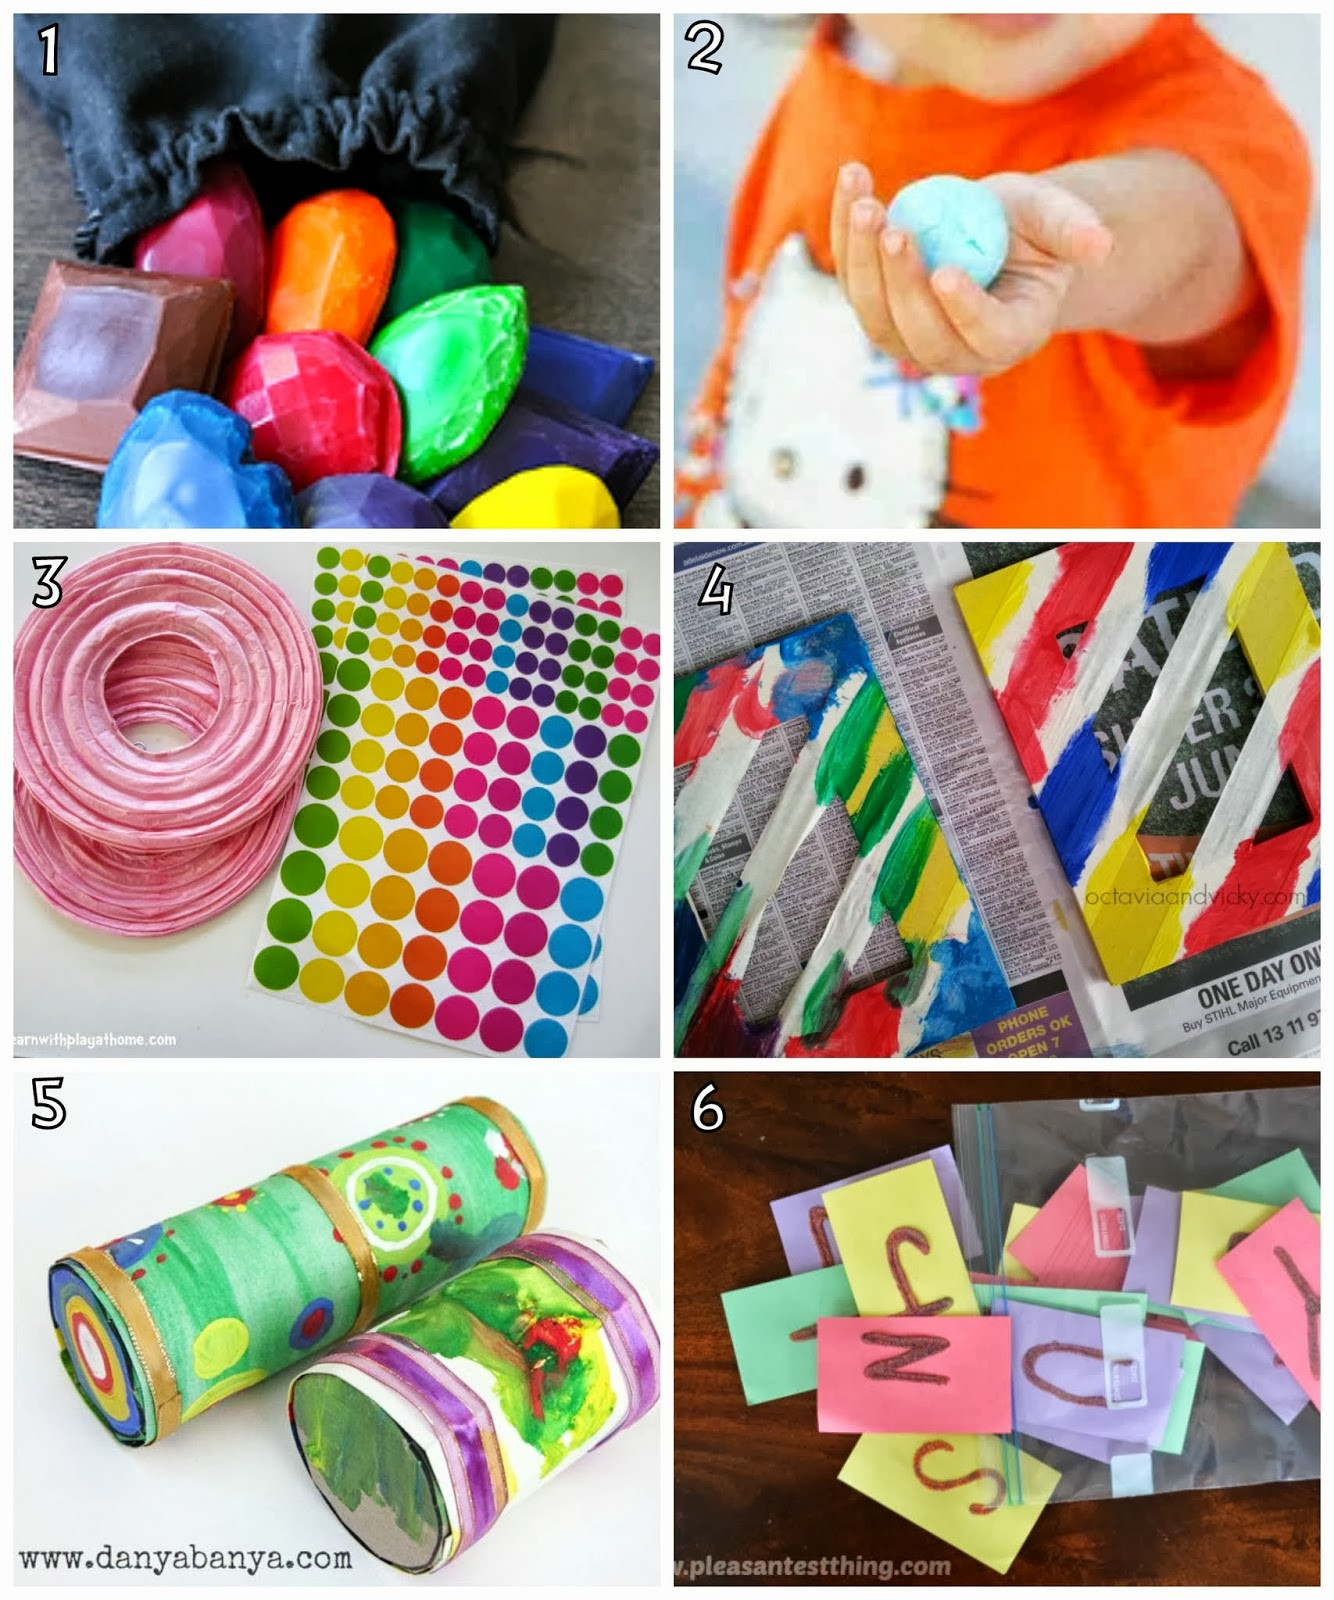 Best ideas about DIY Toddler Activities . Save or Pin Learn with Play at Home 12 fun DIY Activities for kids Now.